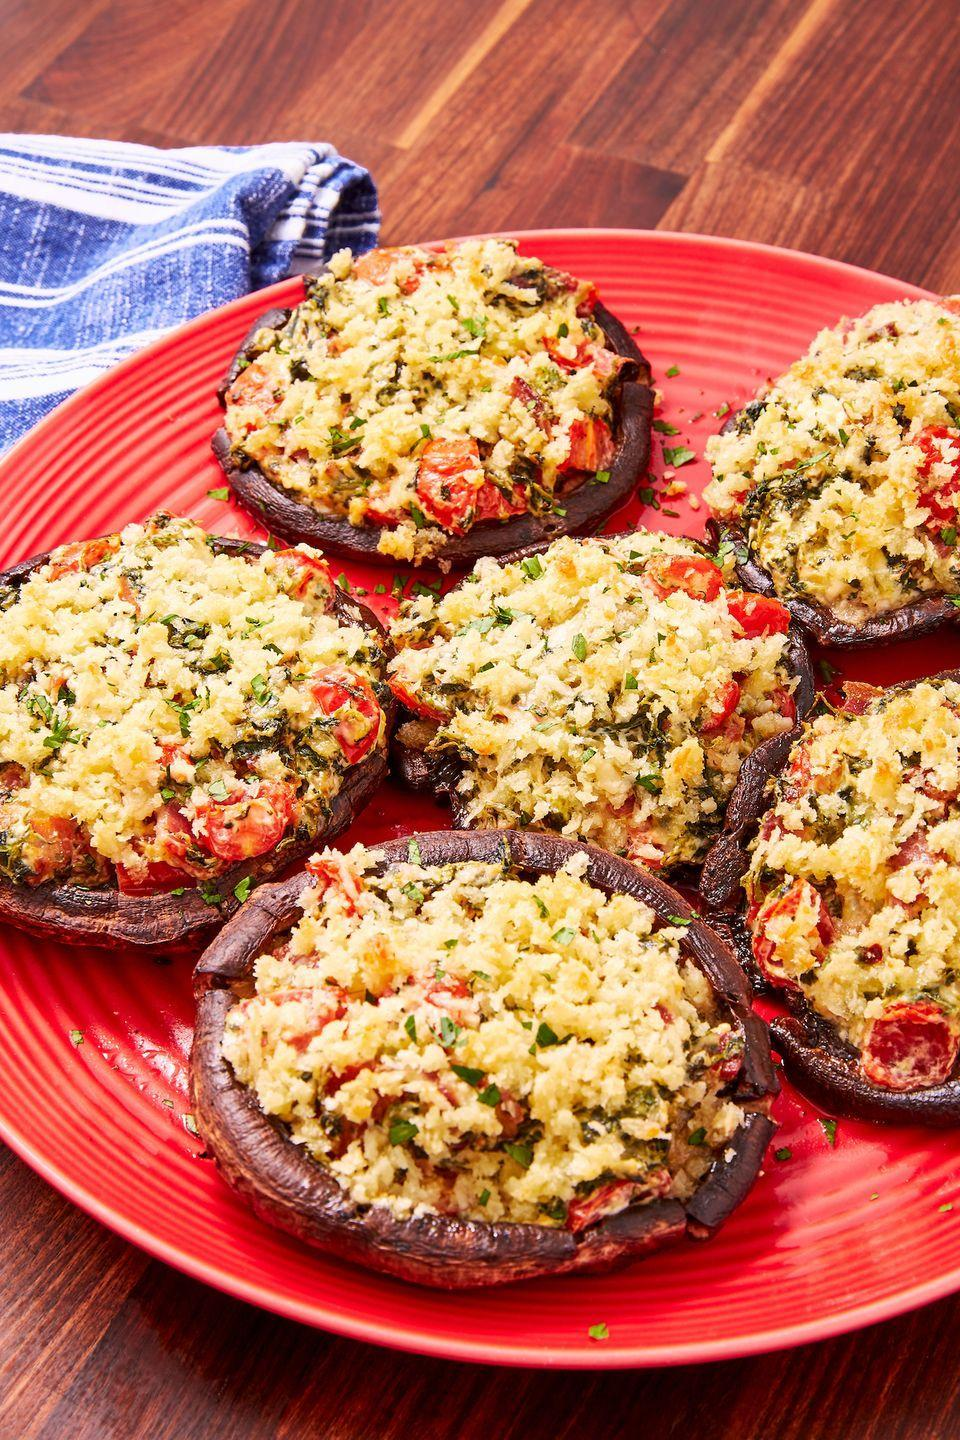 "<p>You won't be able to stop eating them. </p><p>Get the recipe from <a href=""https://www.delish.com/cooking/recipe-ideas/a28581055/stuffed-portobello-mushrooms-recipe/"" rel=""nofollow noopener"" target=""_blank"" data-ylk=""slk:Delish"" class=""link rapid-noclick-resp"">Delish</a>.</p>"